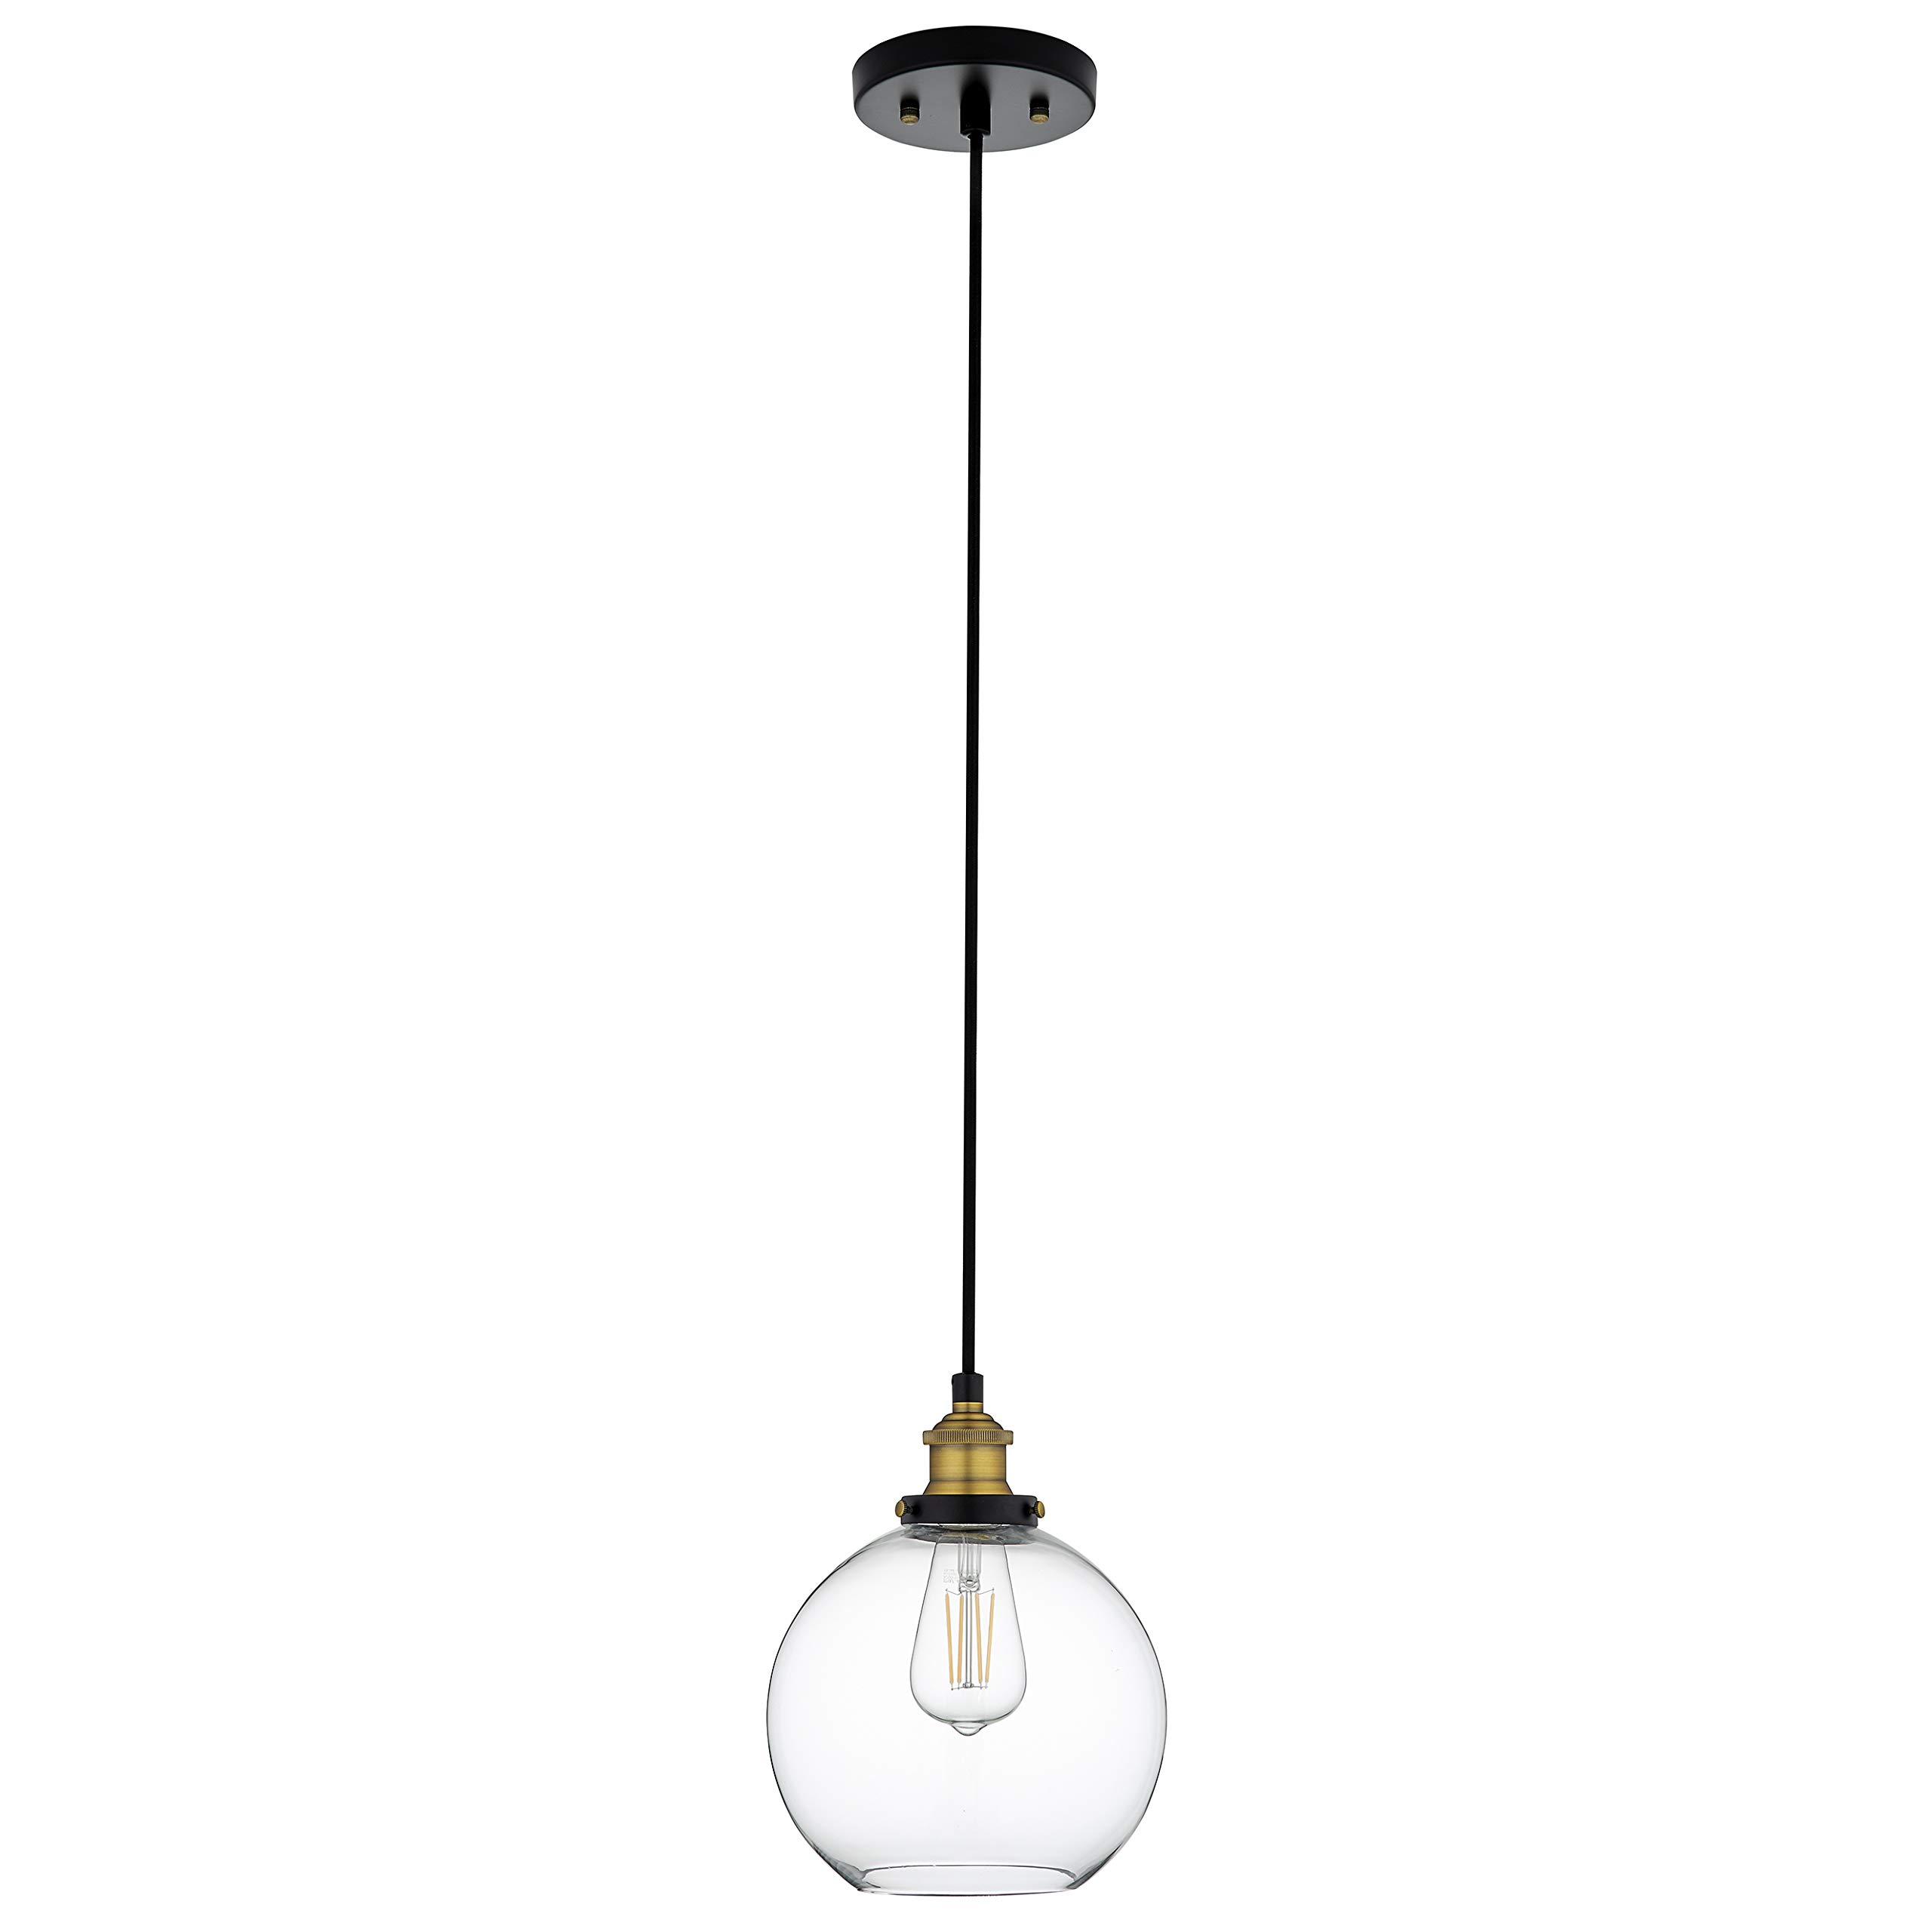 Primo Industrial Kitchen Pendant Light - Antique Brass Hanging Fixture - Linea di Liara LL-P429-AB by Linea di Liara (Image #8)